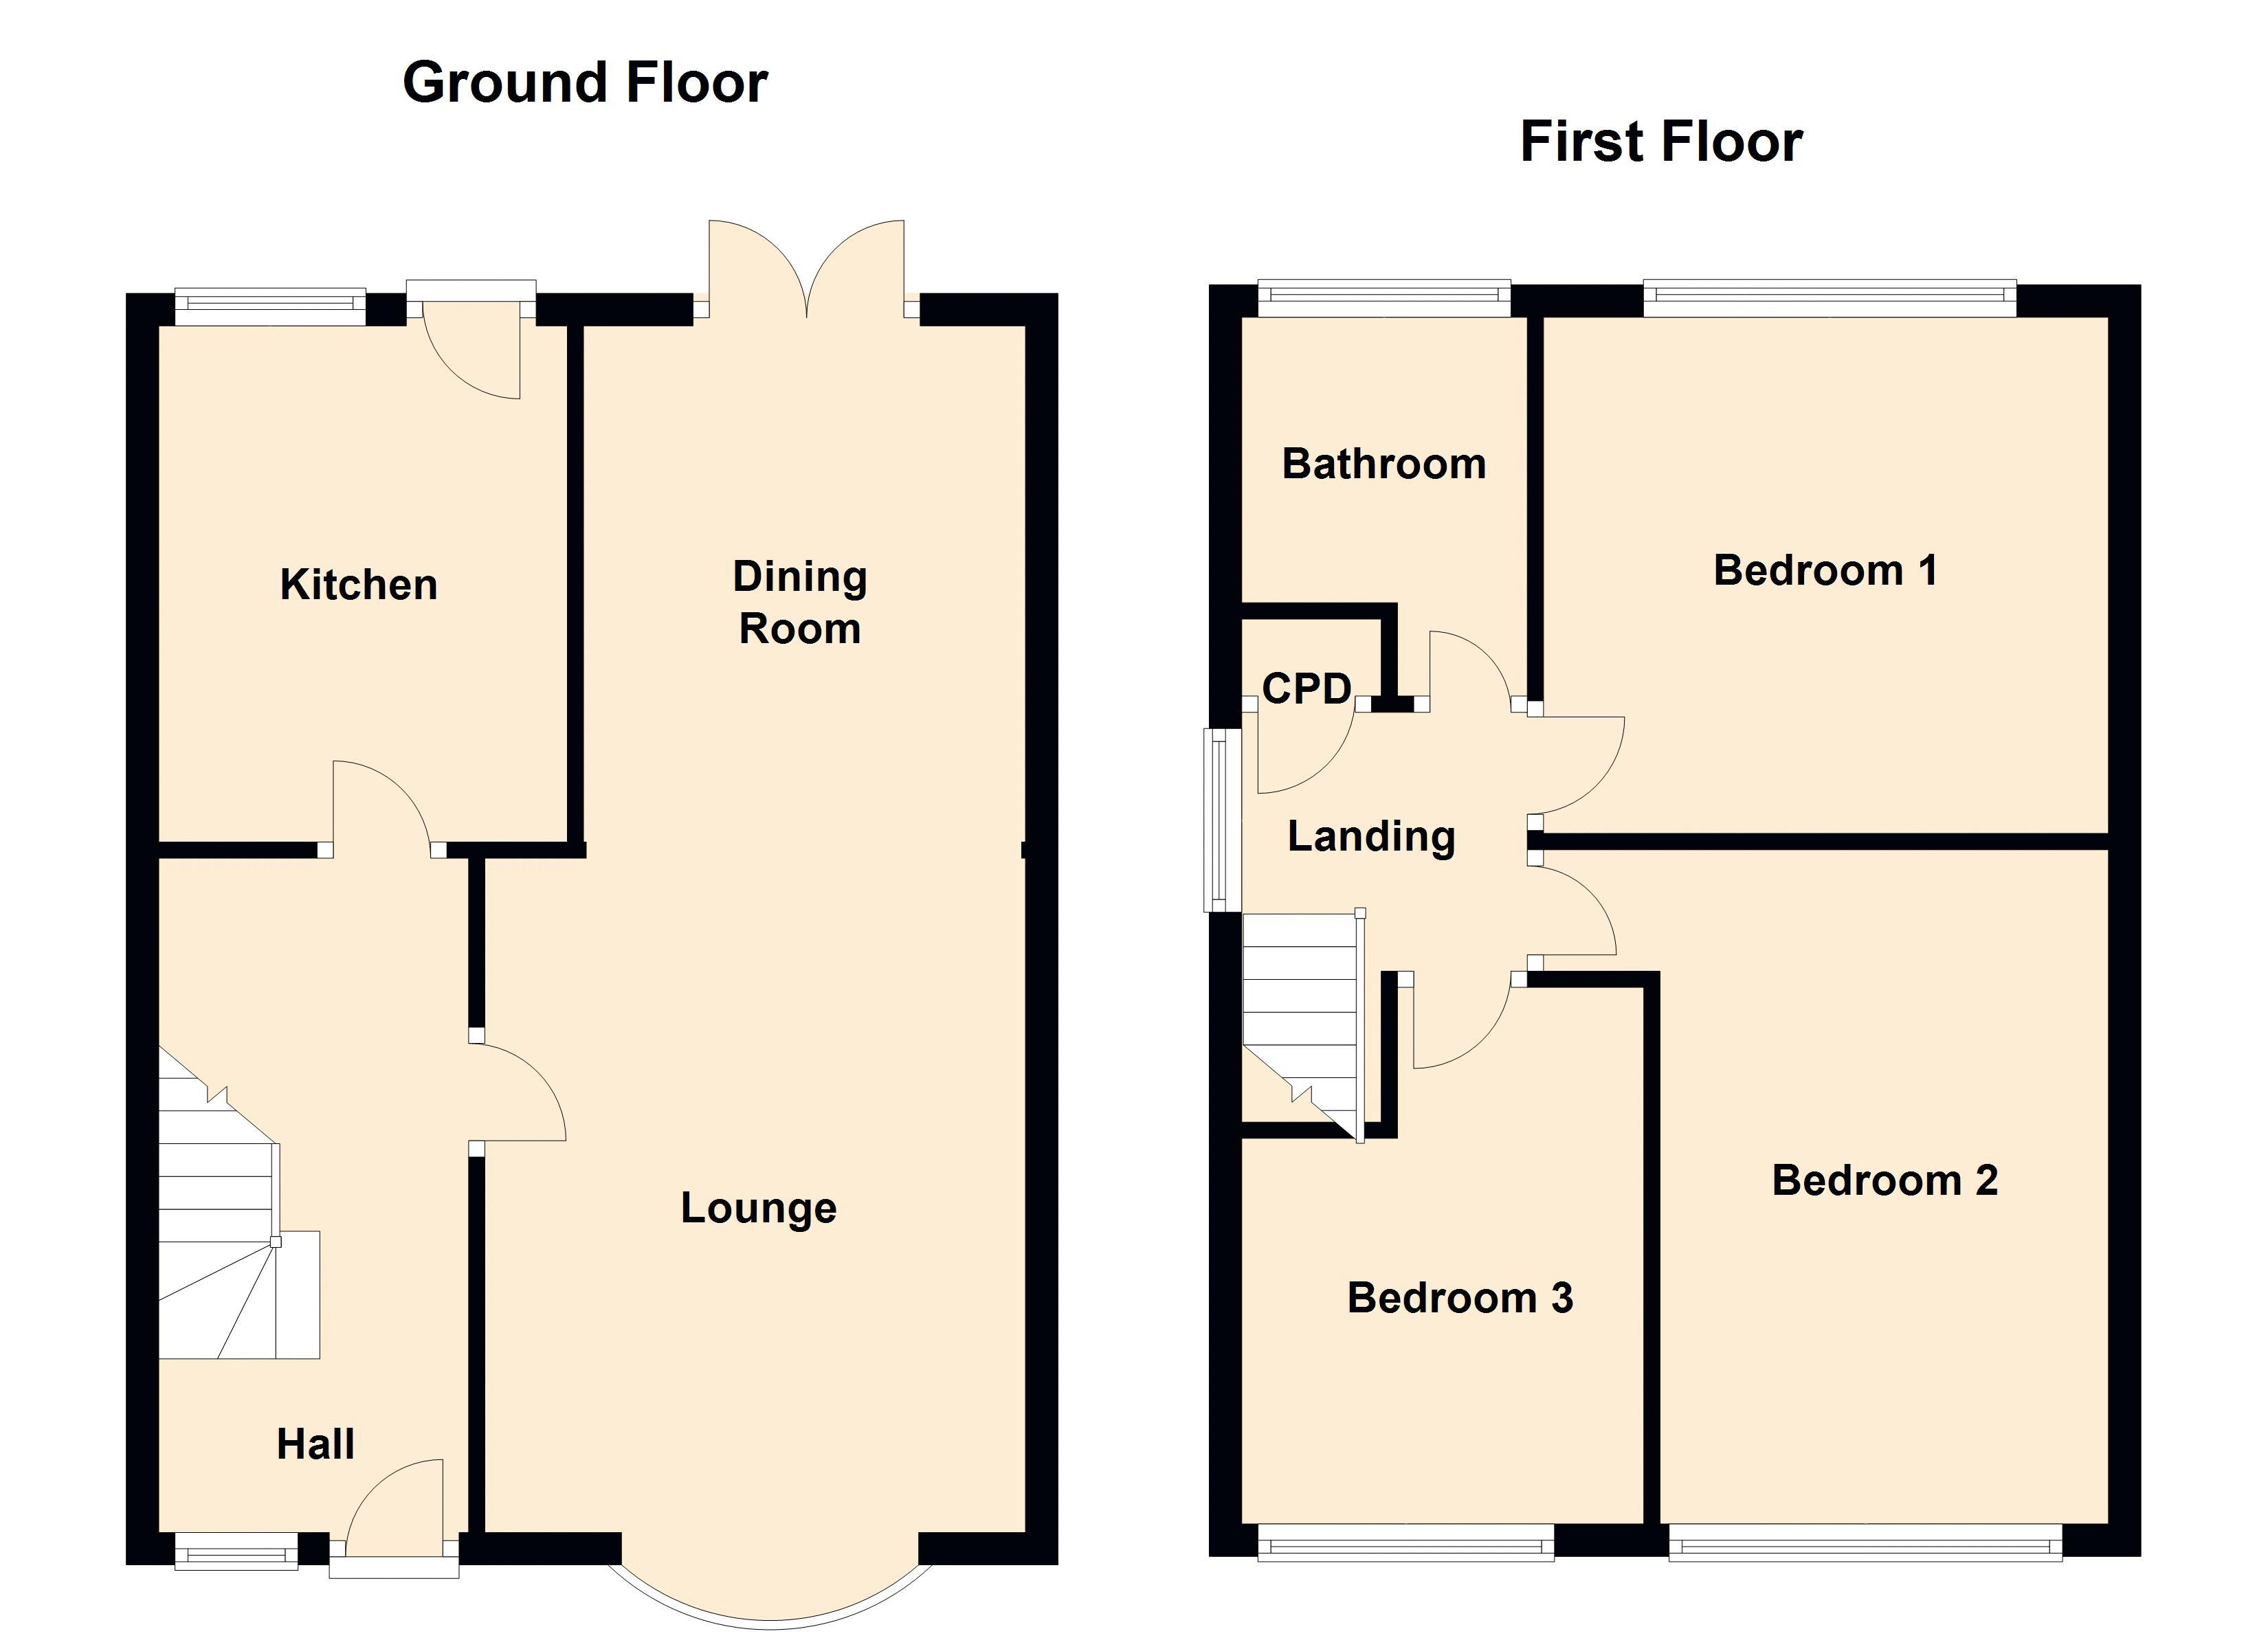 Ground / First Floors